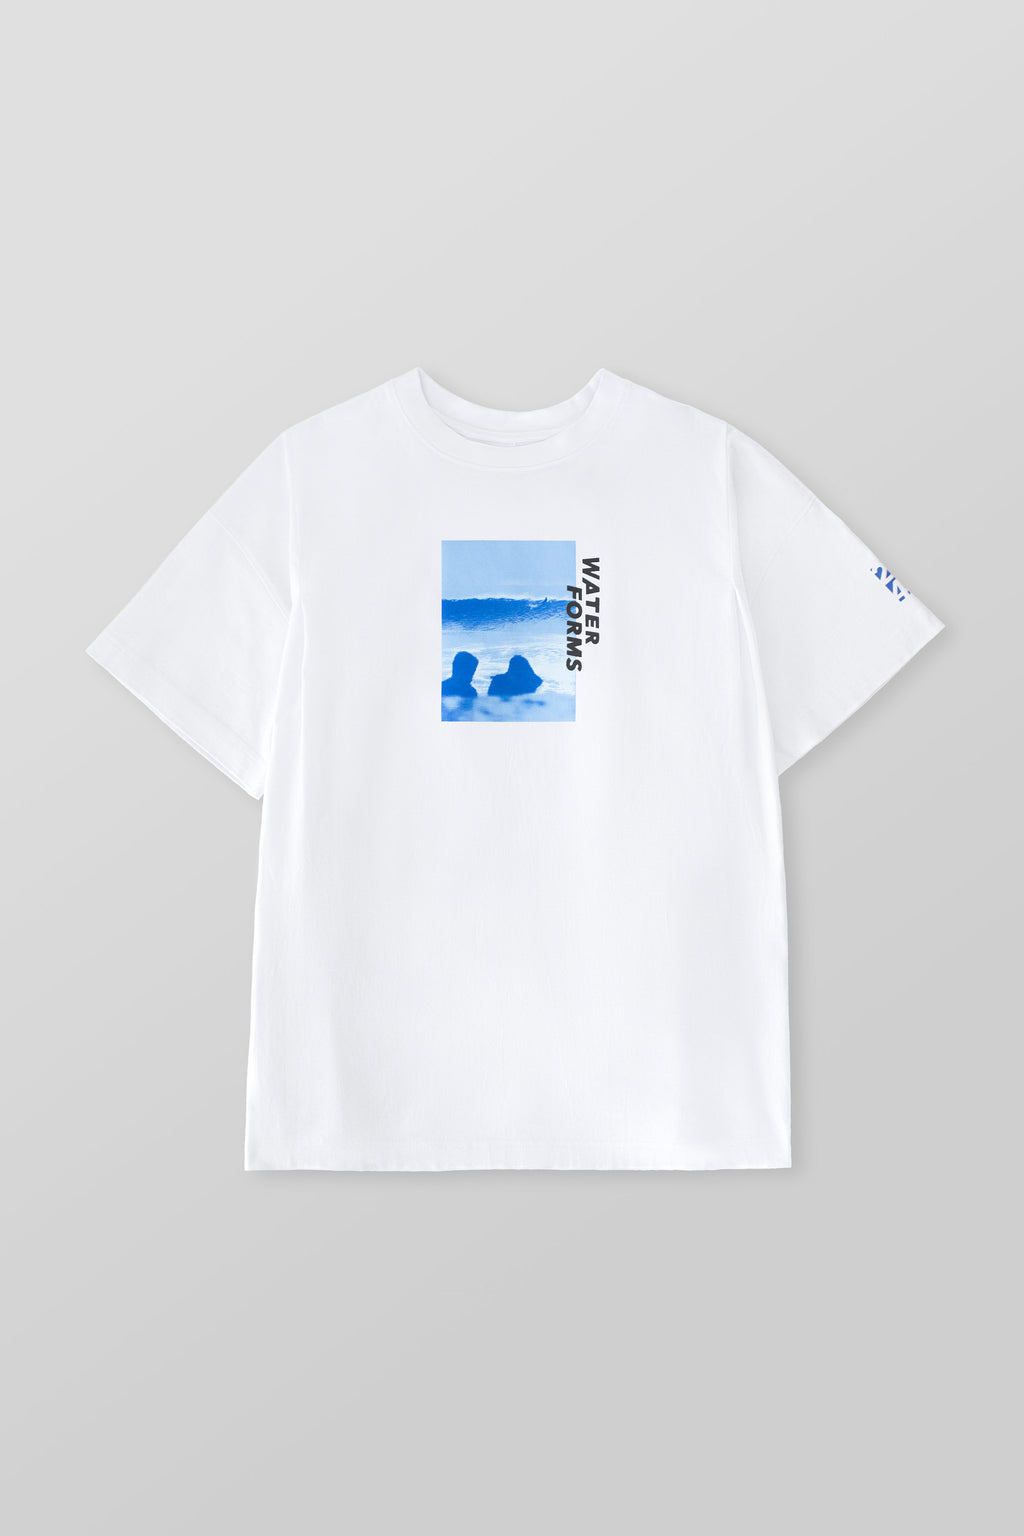 'Together by the sea' T-shirt (White) - Mercanie